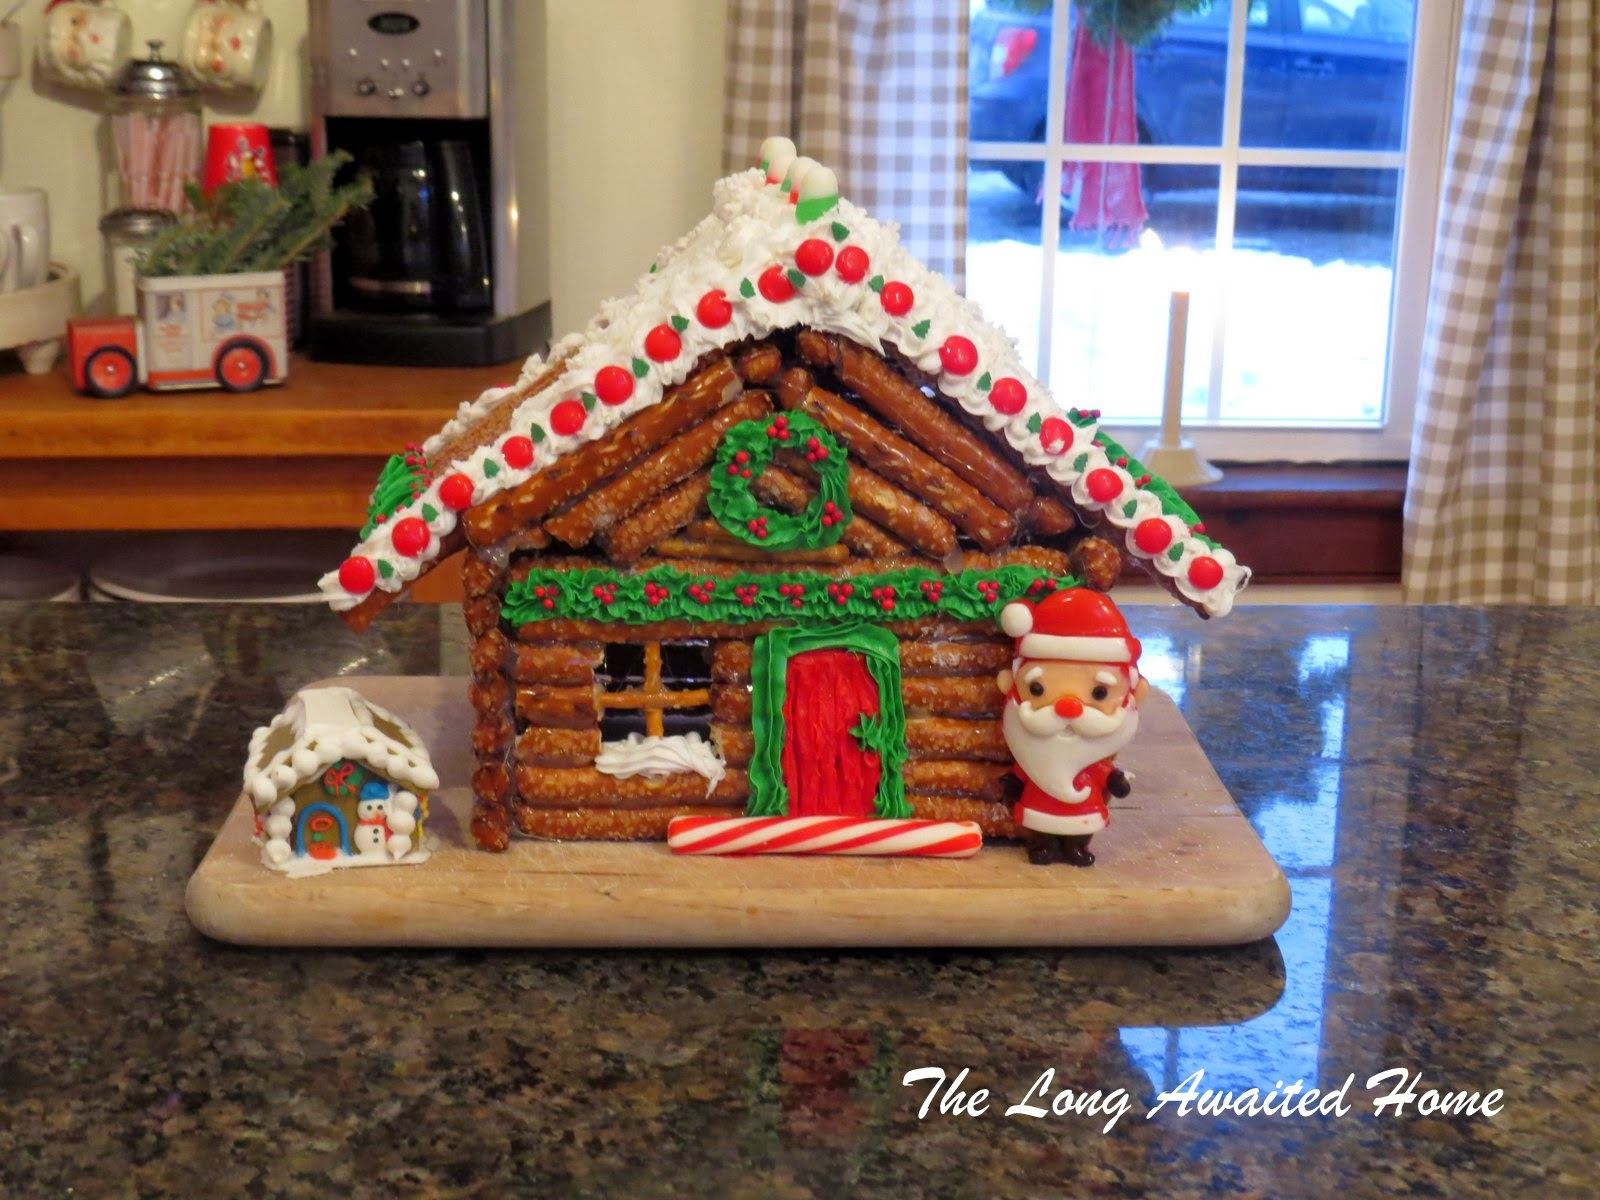 The Long Awaited Home: Gingerbread House aka Pretzel Log Cabin Gingerbread House Design Out Html on gingerbread roof designs, art designs, valentine's day designs, gingerbread architectural designs, mother's day designs, cupcakes designs, bread designs, gift designs, little houses designs, cobblestone driveway designs, pumpkin designs, gingerbread porch designs, gumball machine designs, gingerbread castle designs, vanilla house designs, upscale club designs, christmas designs, dessert designs, elf designs, chicken designs,